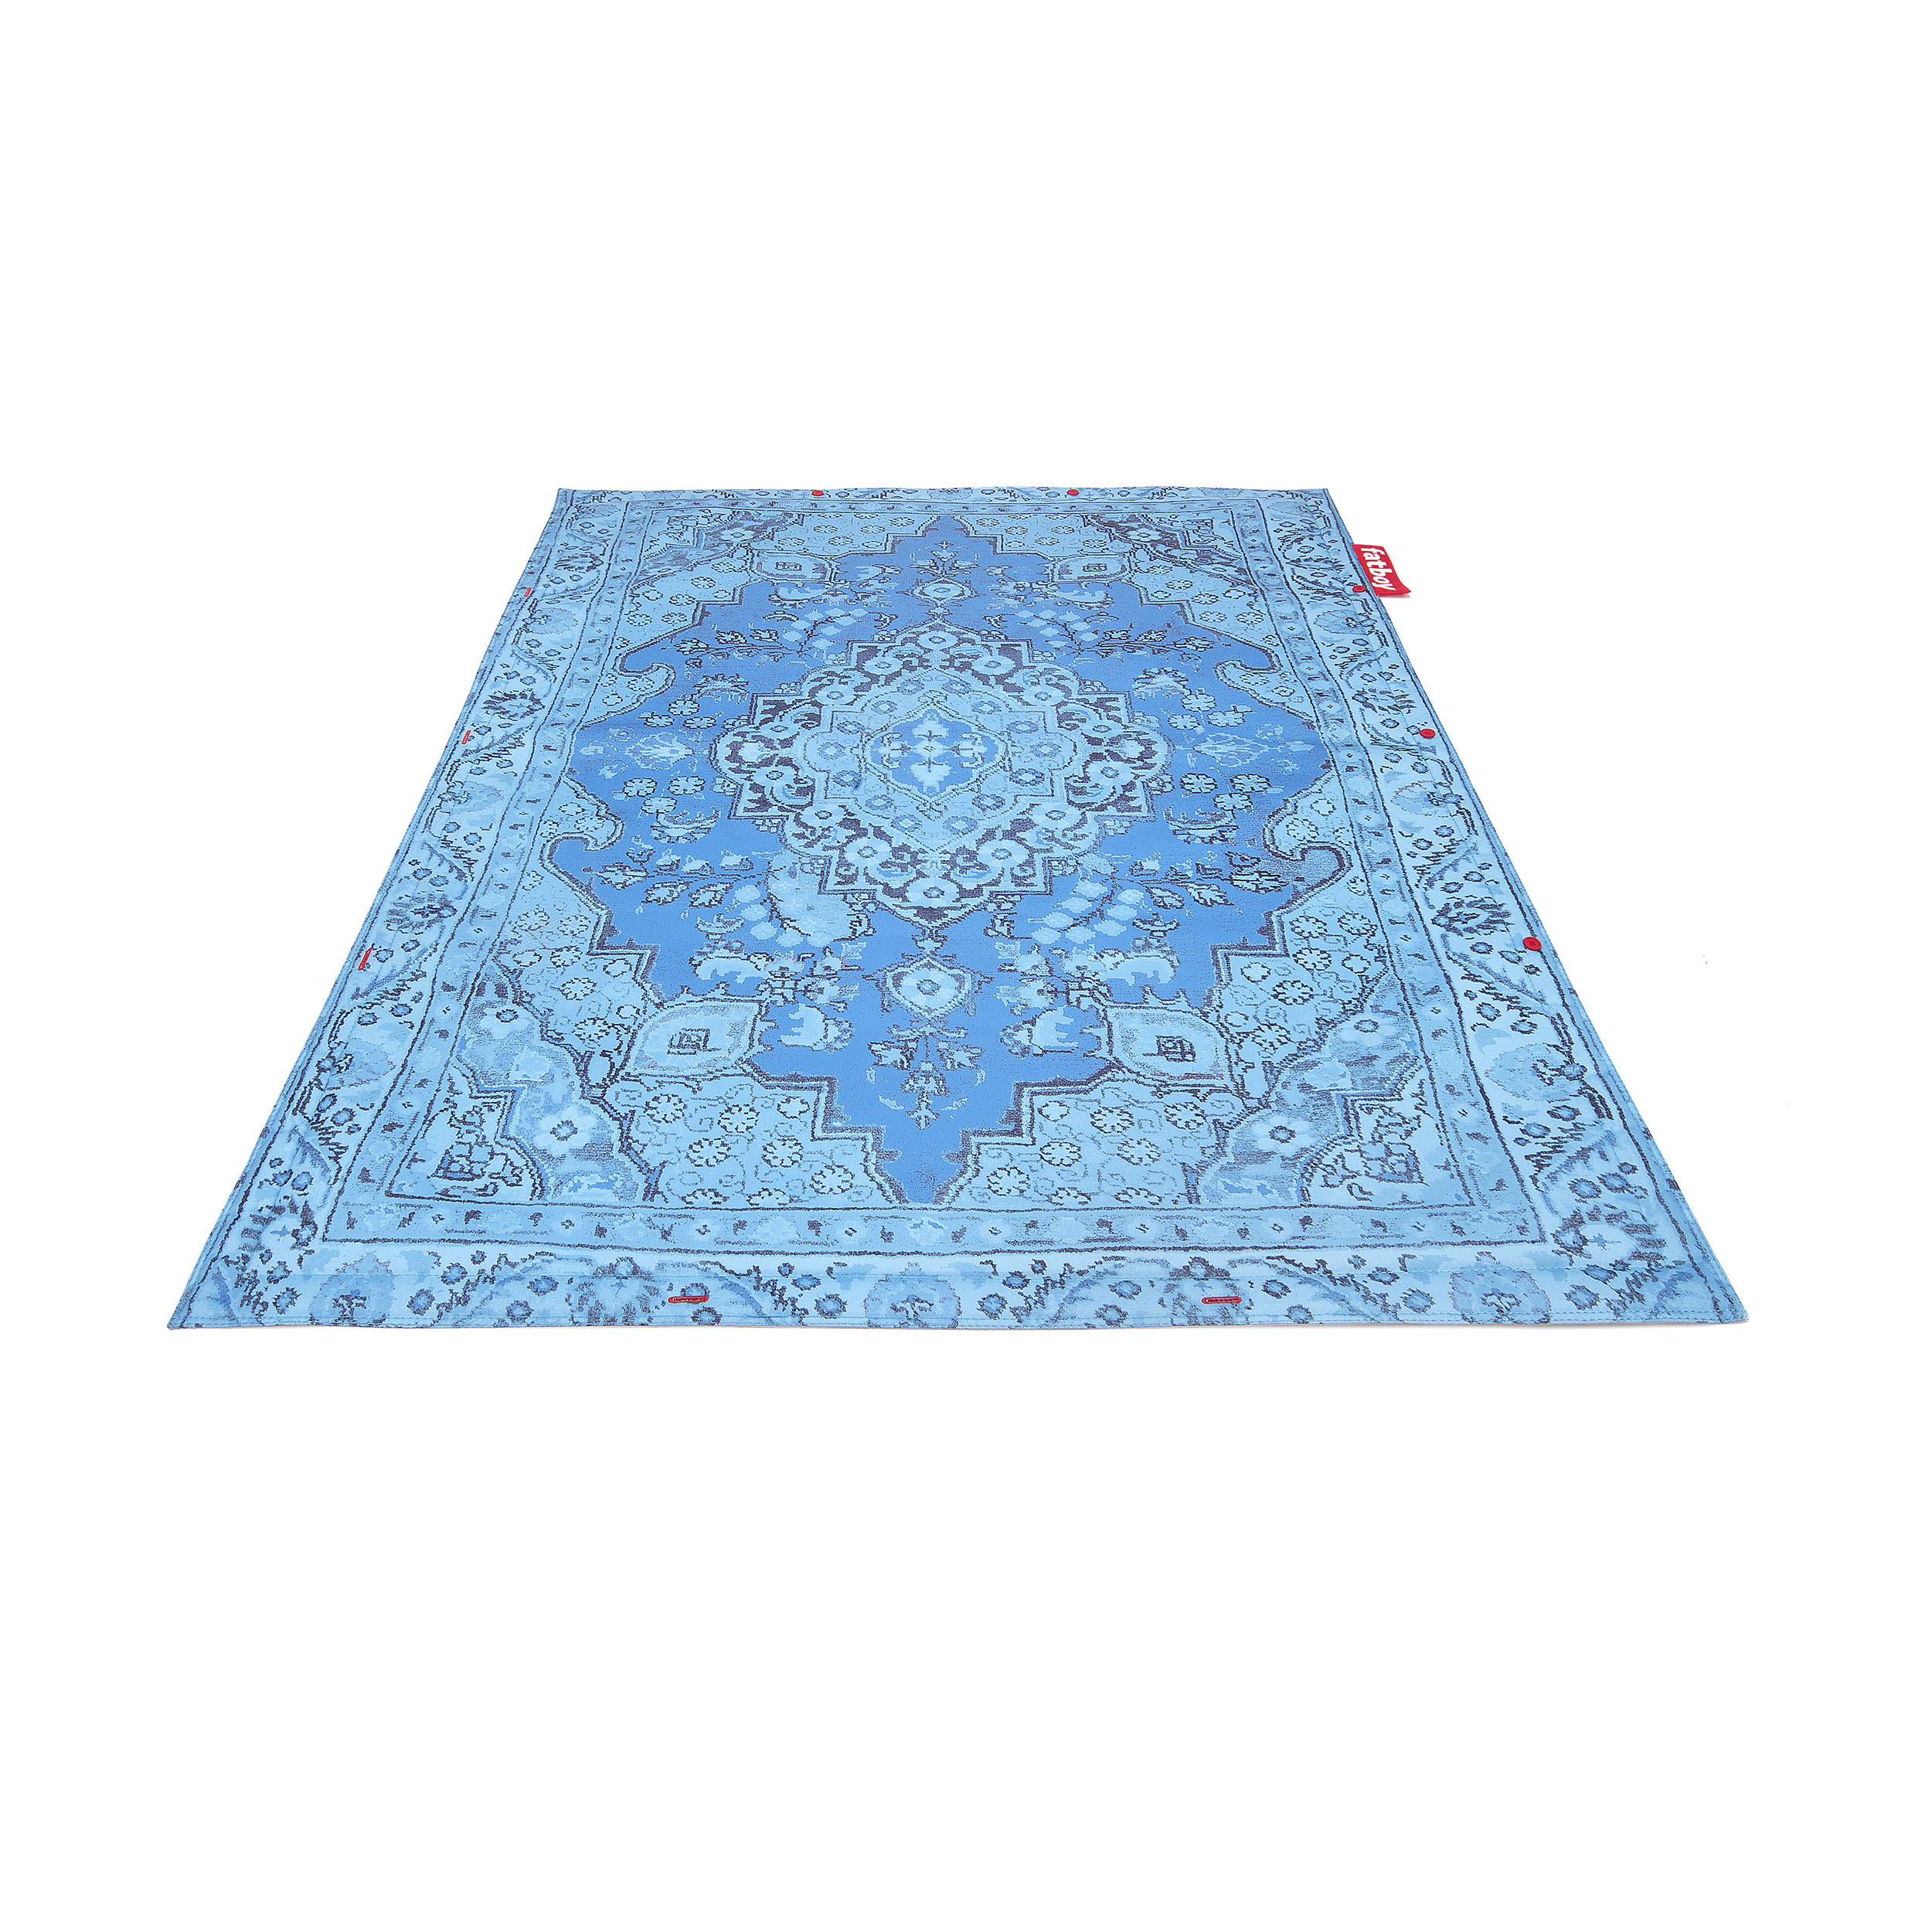 Fatboy Non-Flying Carpet Teppich Small Persian